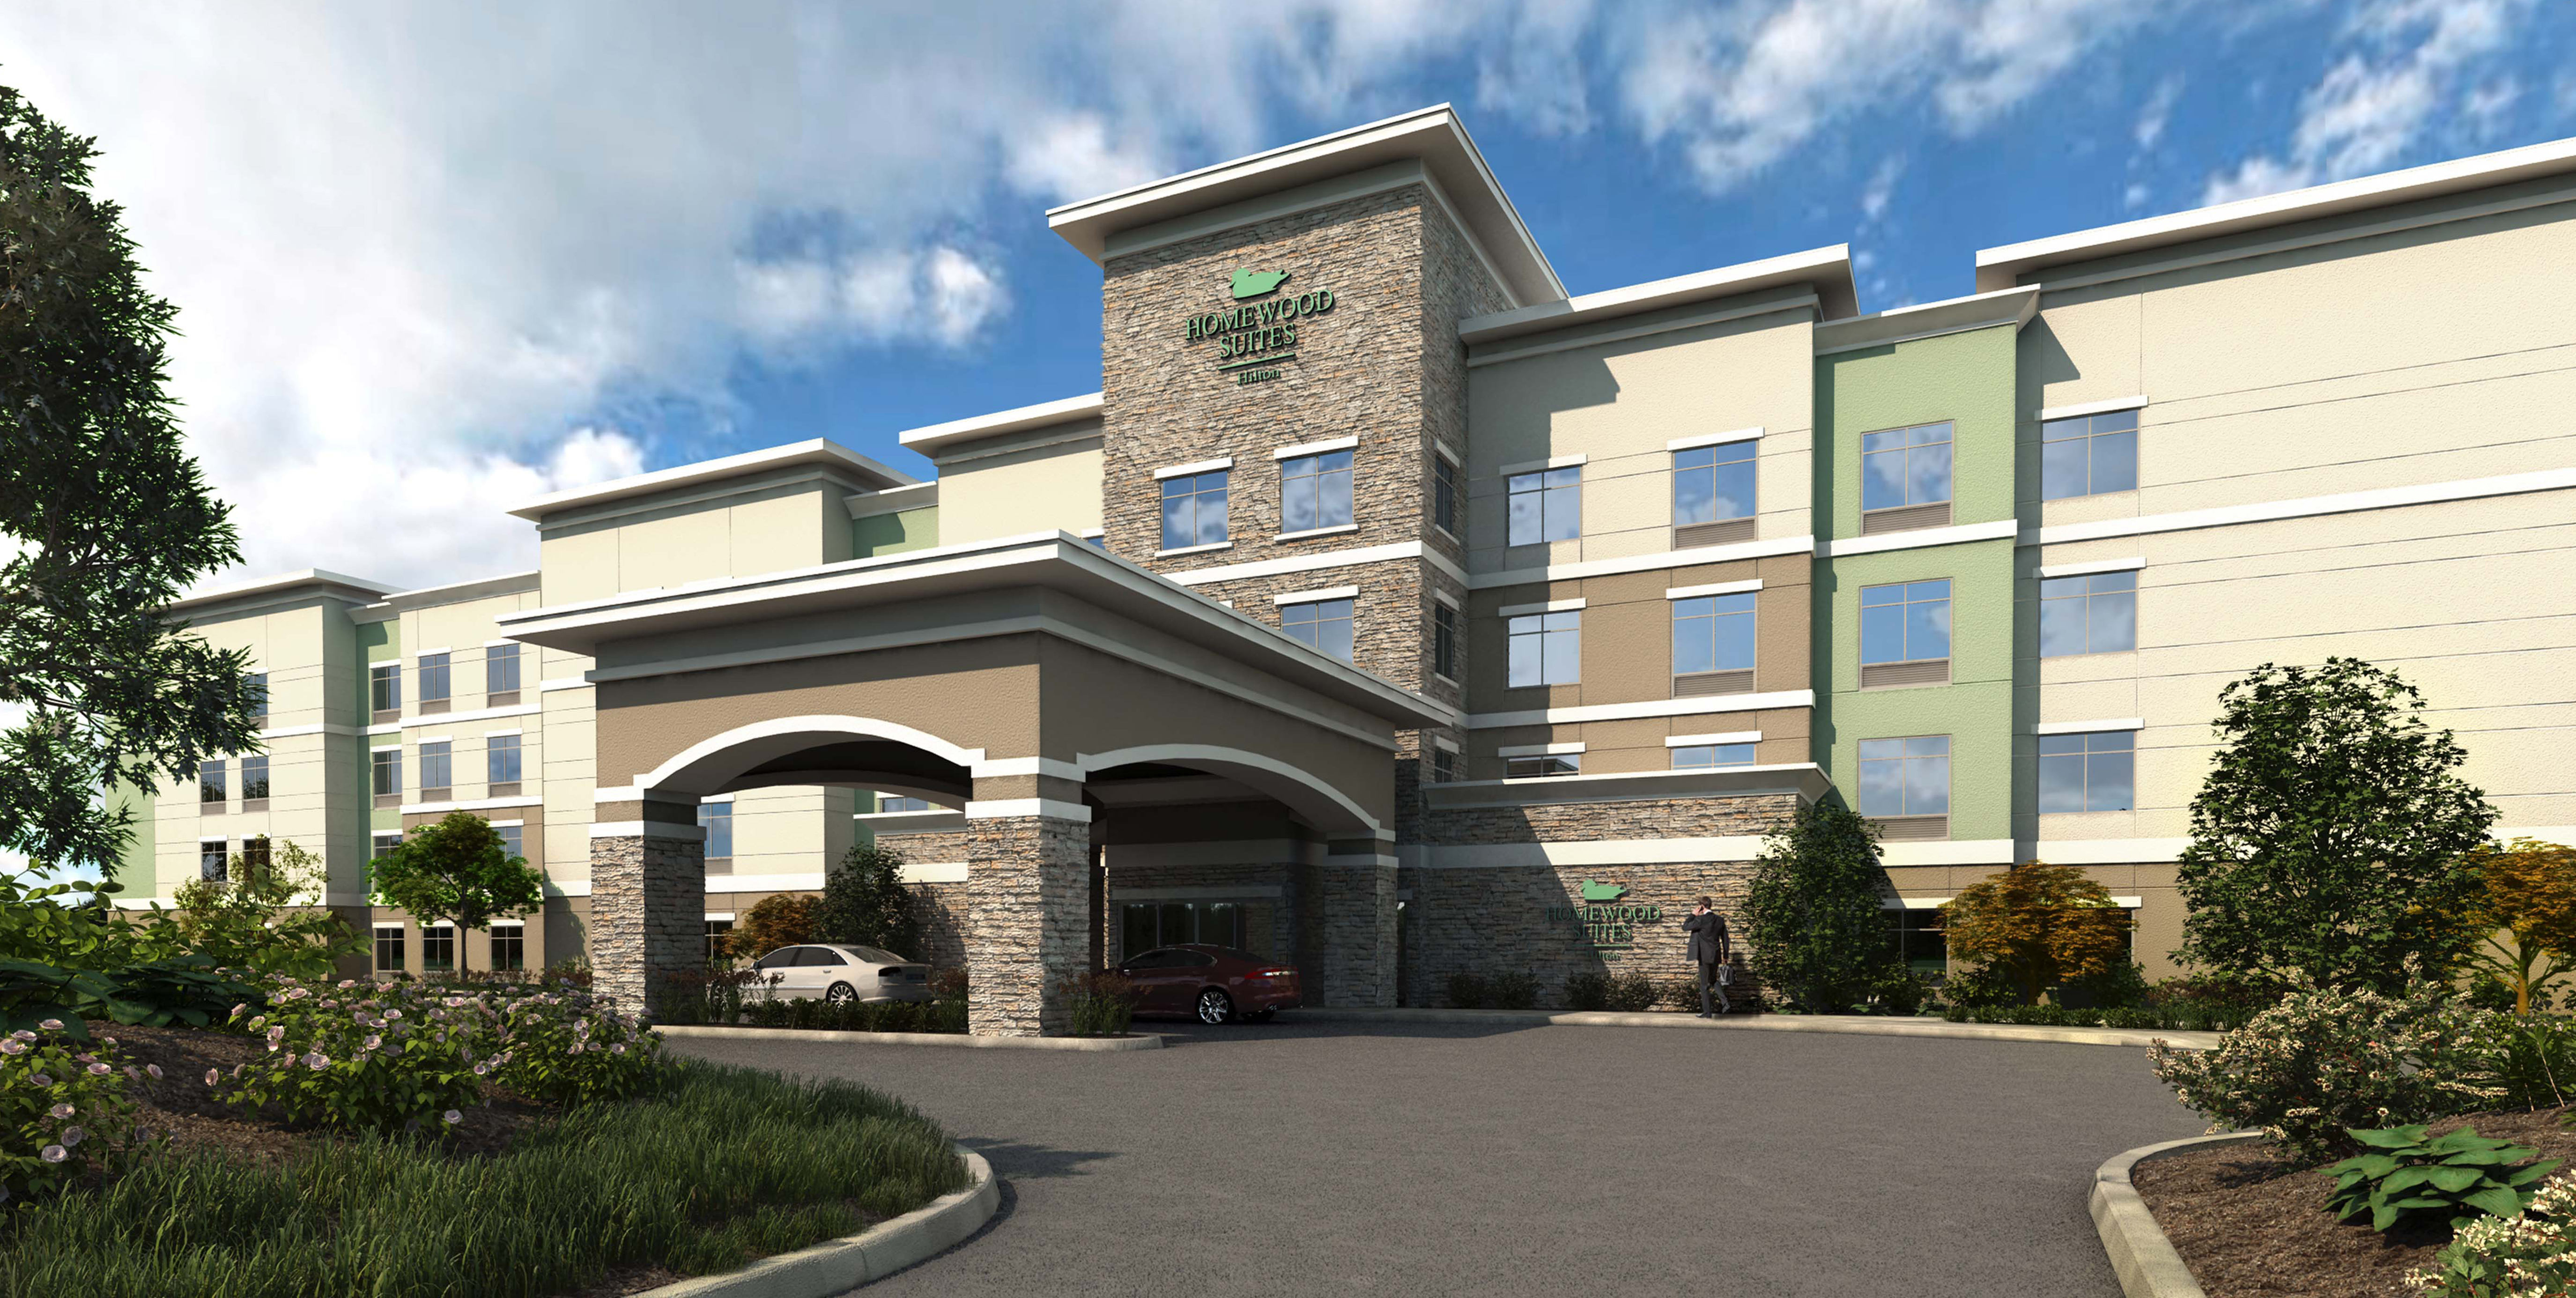 Homewood suites by hilton hospitality net for In home suites